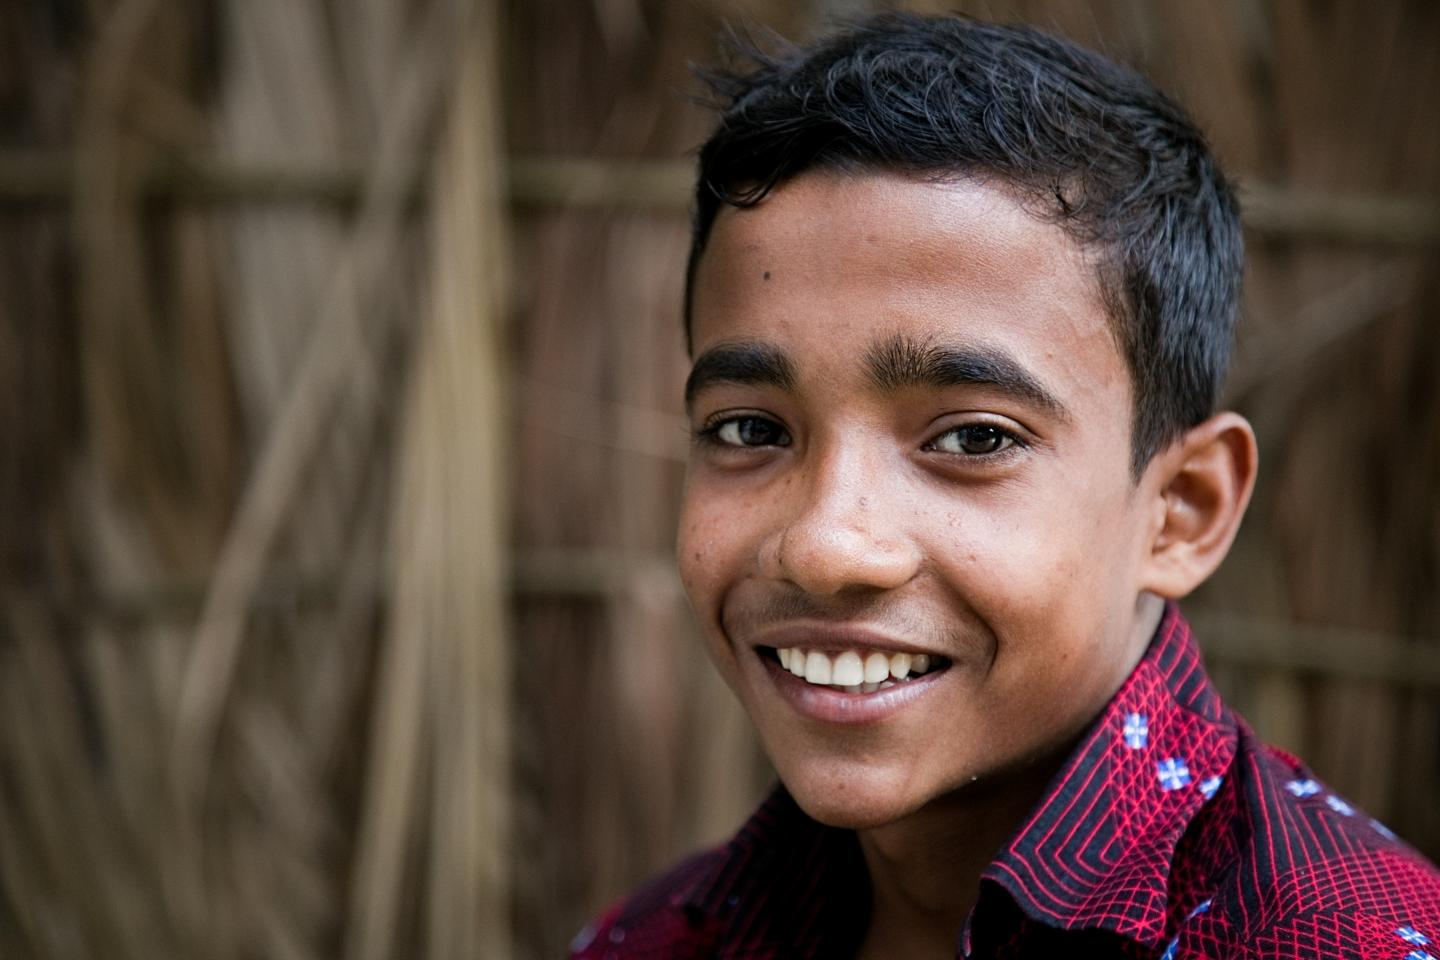 Mahadi, an adolescent boy, smiles at the camera wearing a dark blue shirt striped with red lines.